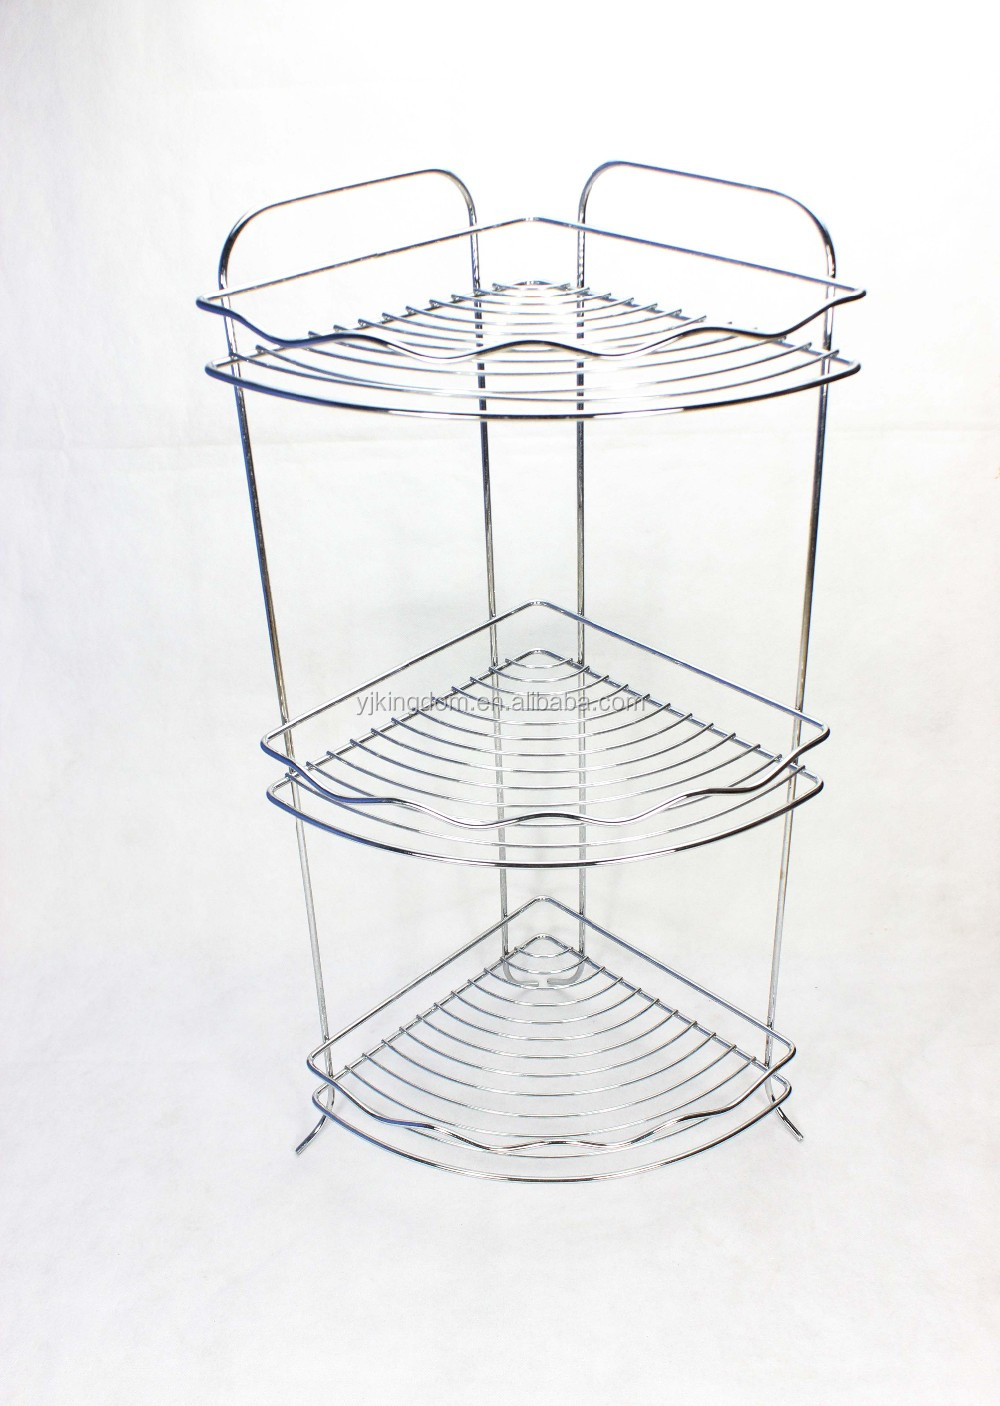 541-23A1 3-tier corner shower caddy bathroom rack